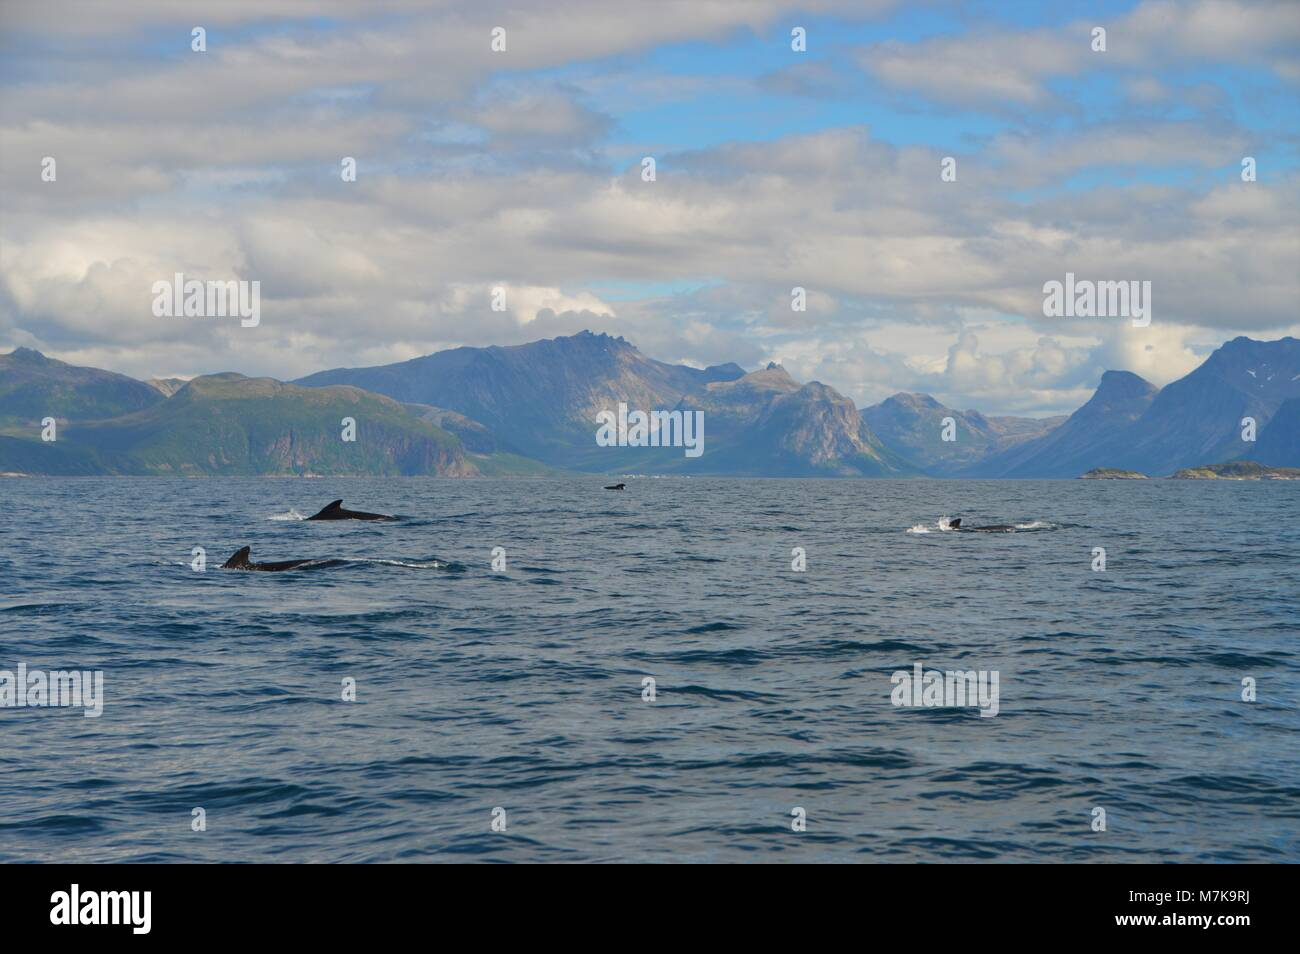 Whales passing through a fjord in norway on a beautiful day. - Stock Image